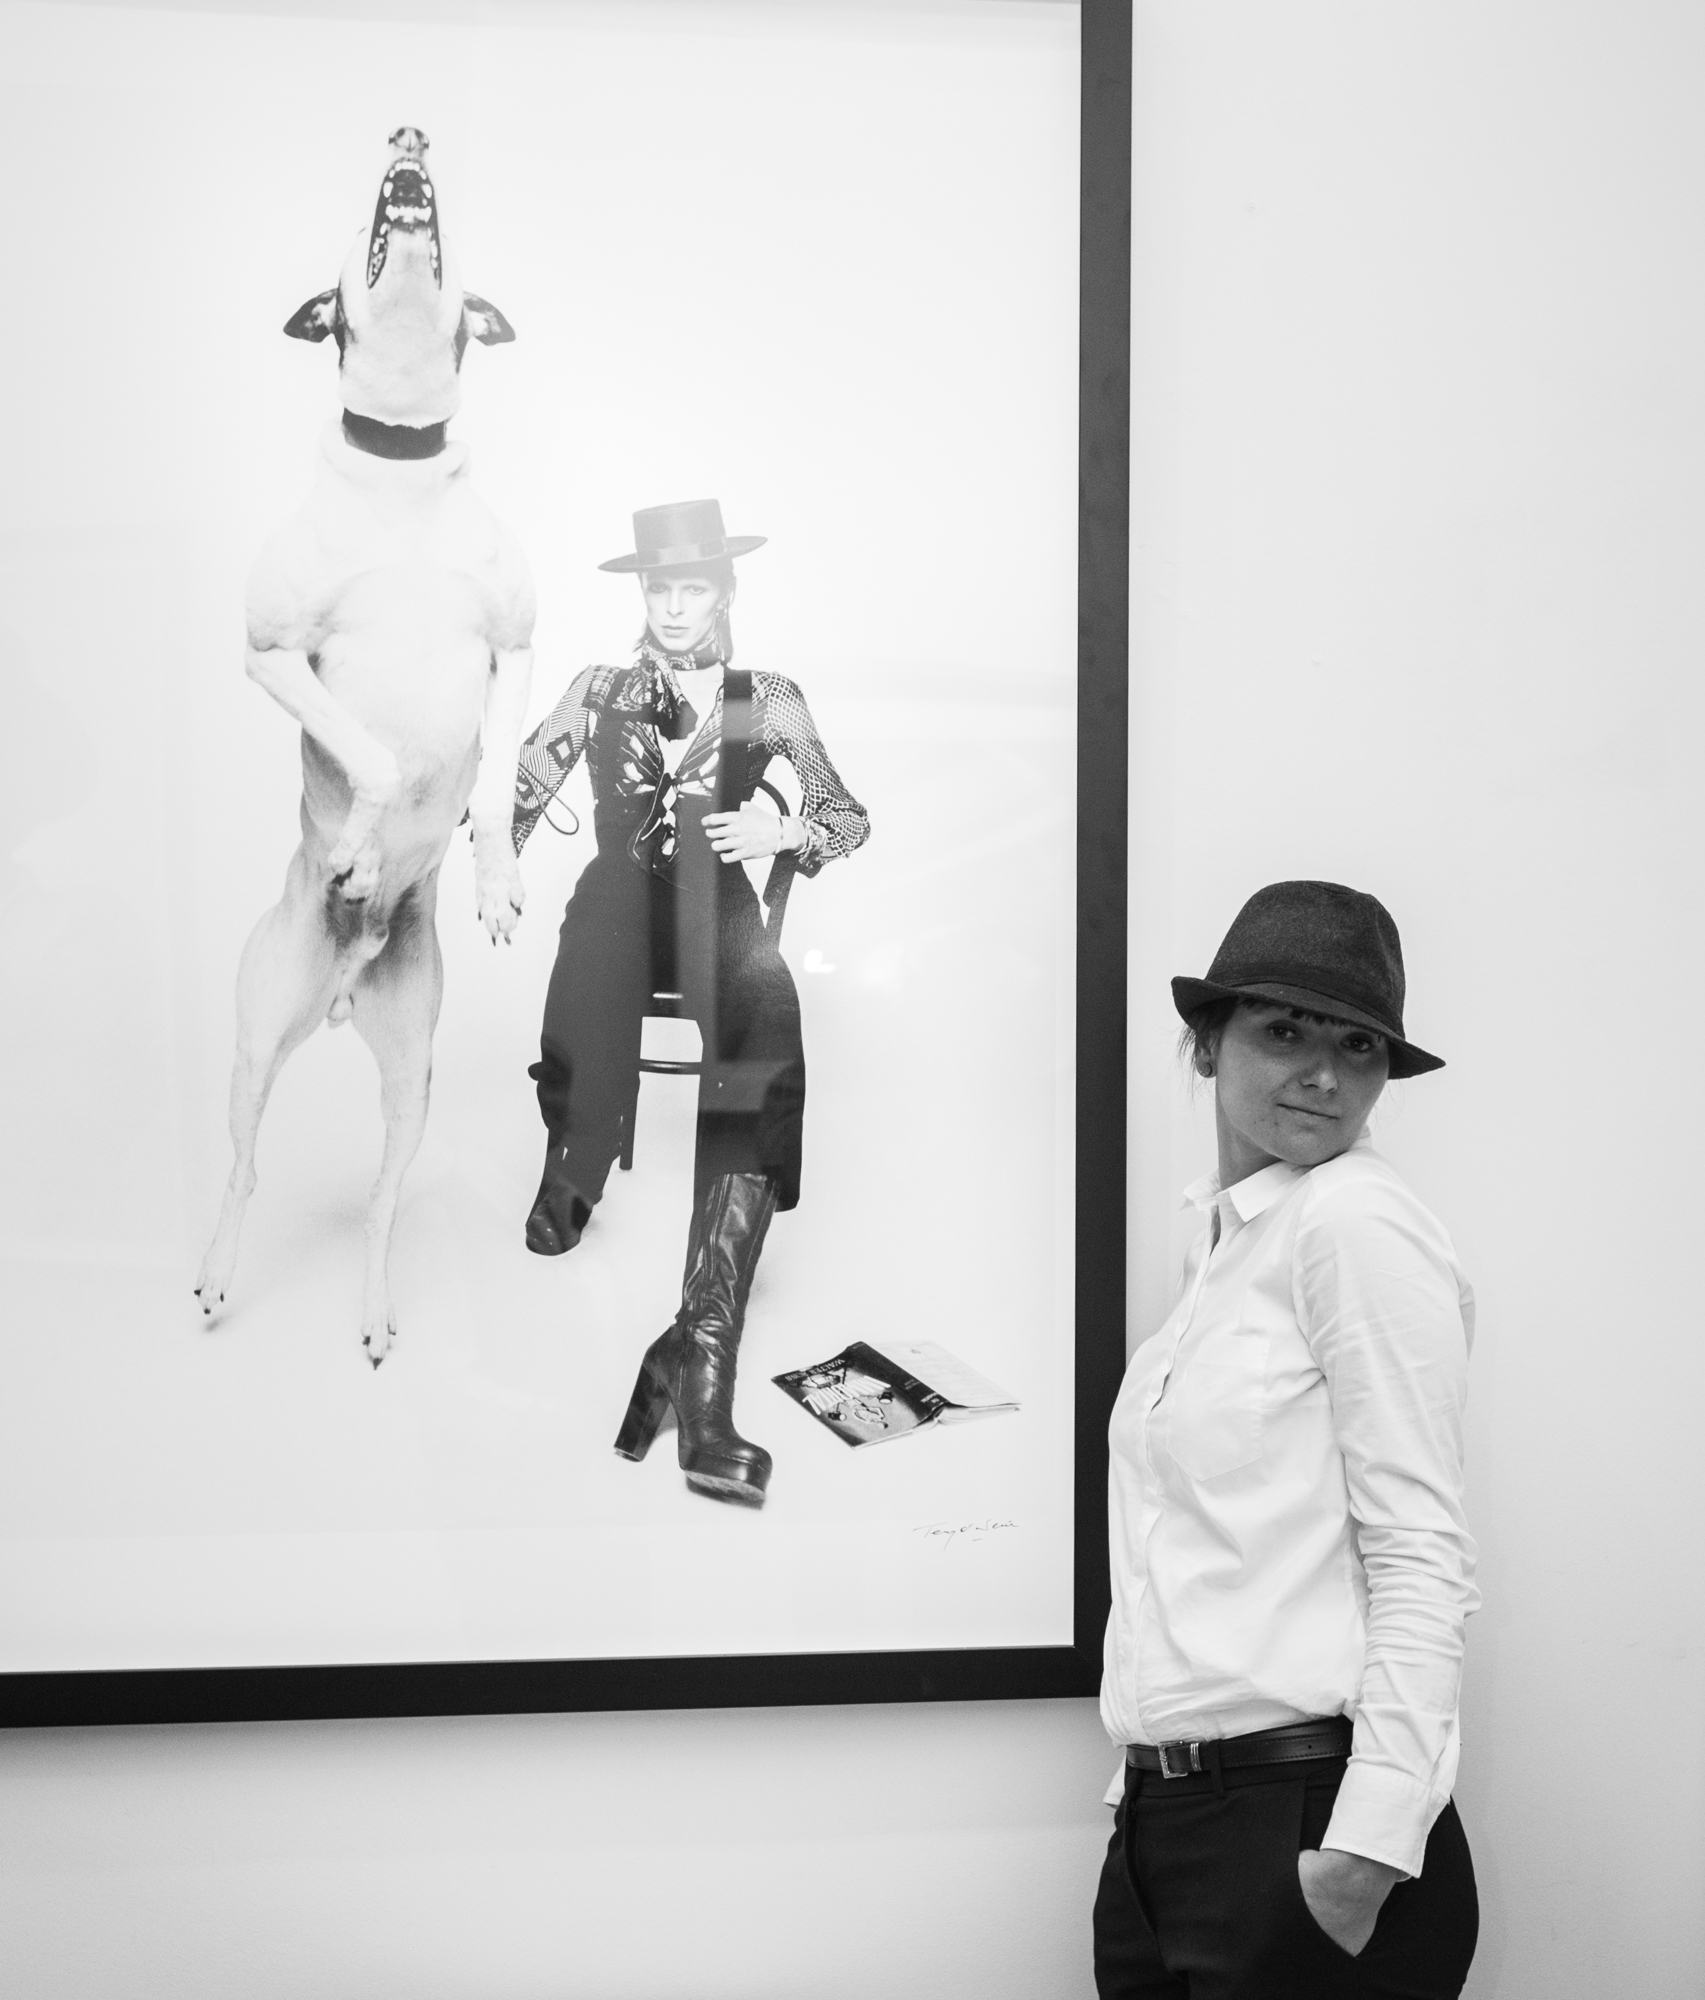 Bowie-by-O'Neill-Exhibition-David-Bowie-party-works-Ransom-Gallery.jpg